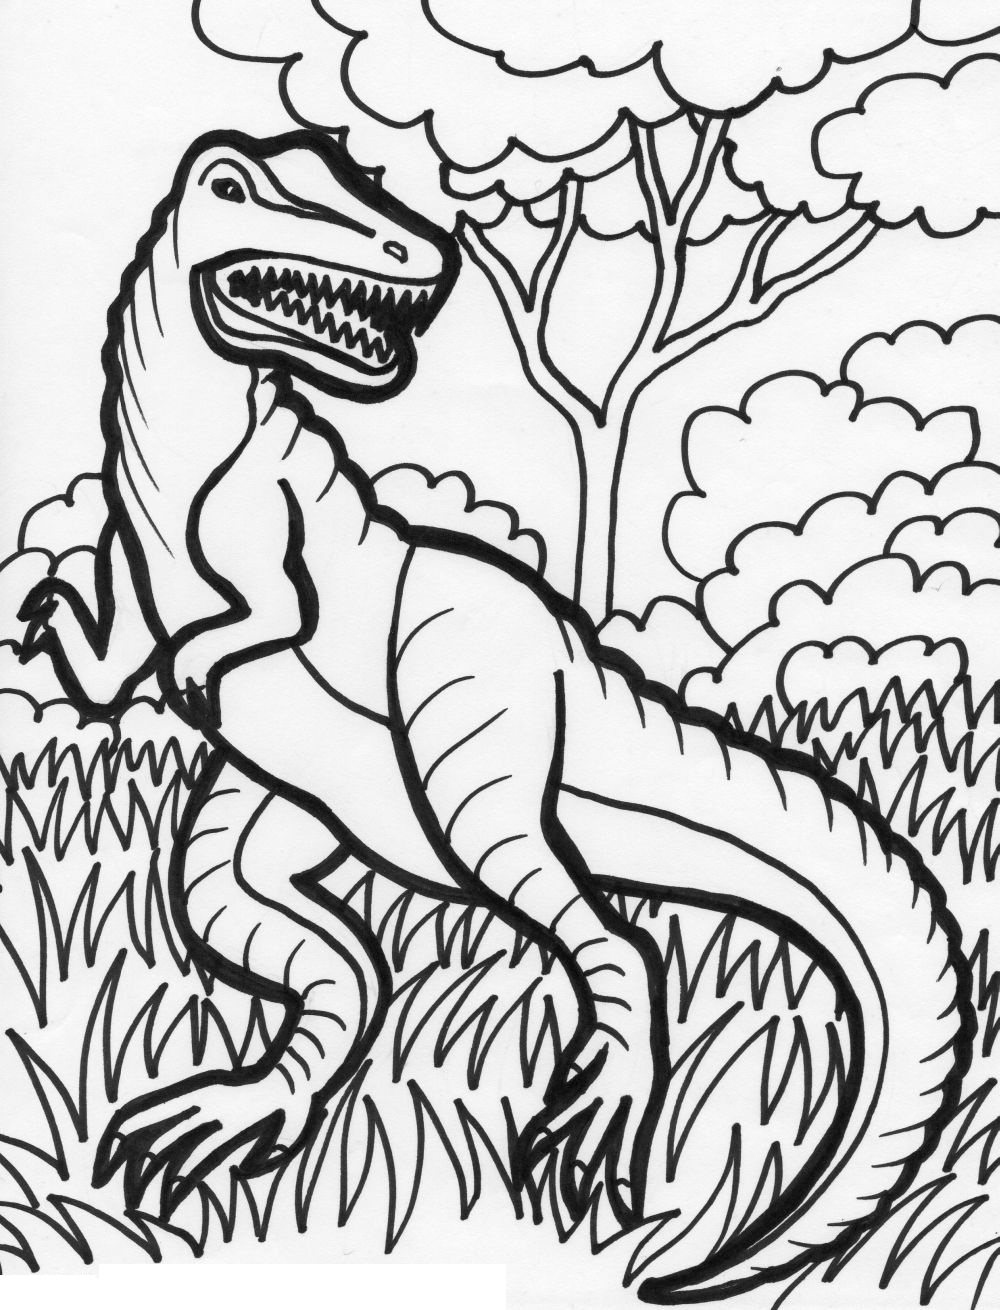 colouring dinosaur pictures free printable dinosaur coloring pages for kids pictures colouring dinosaur